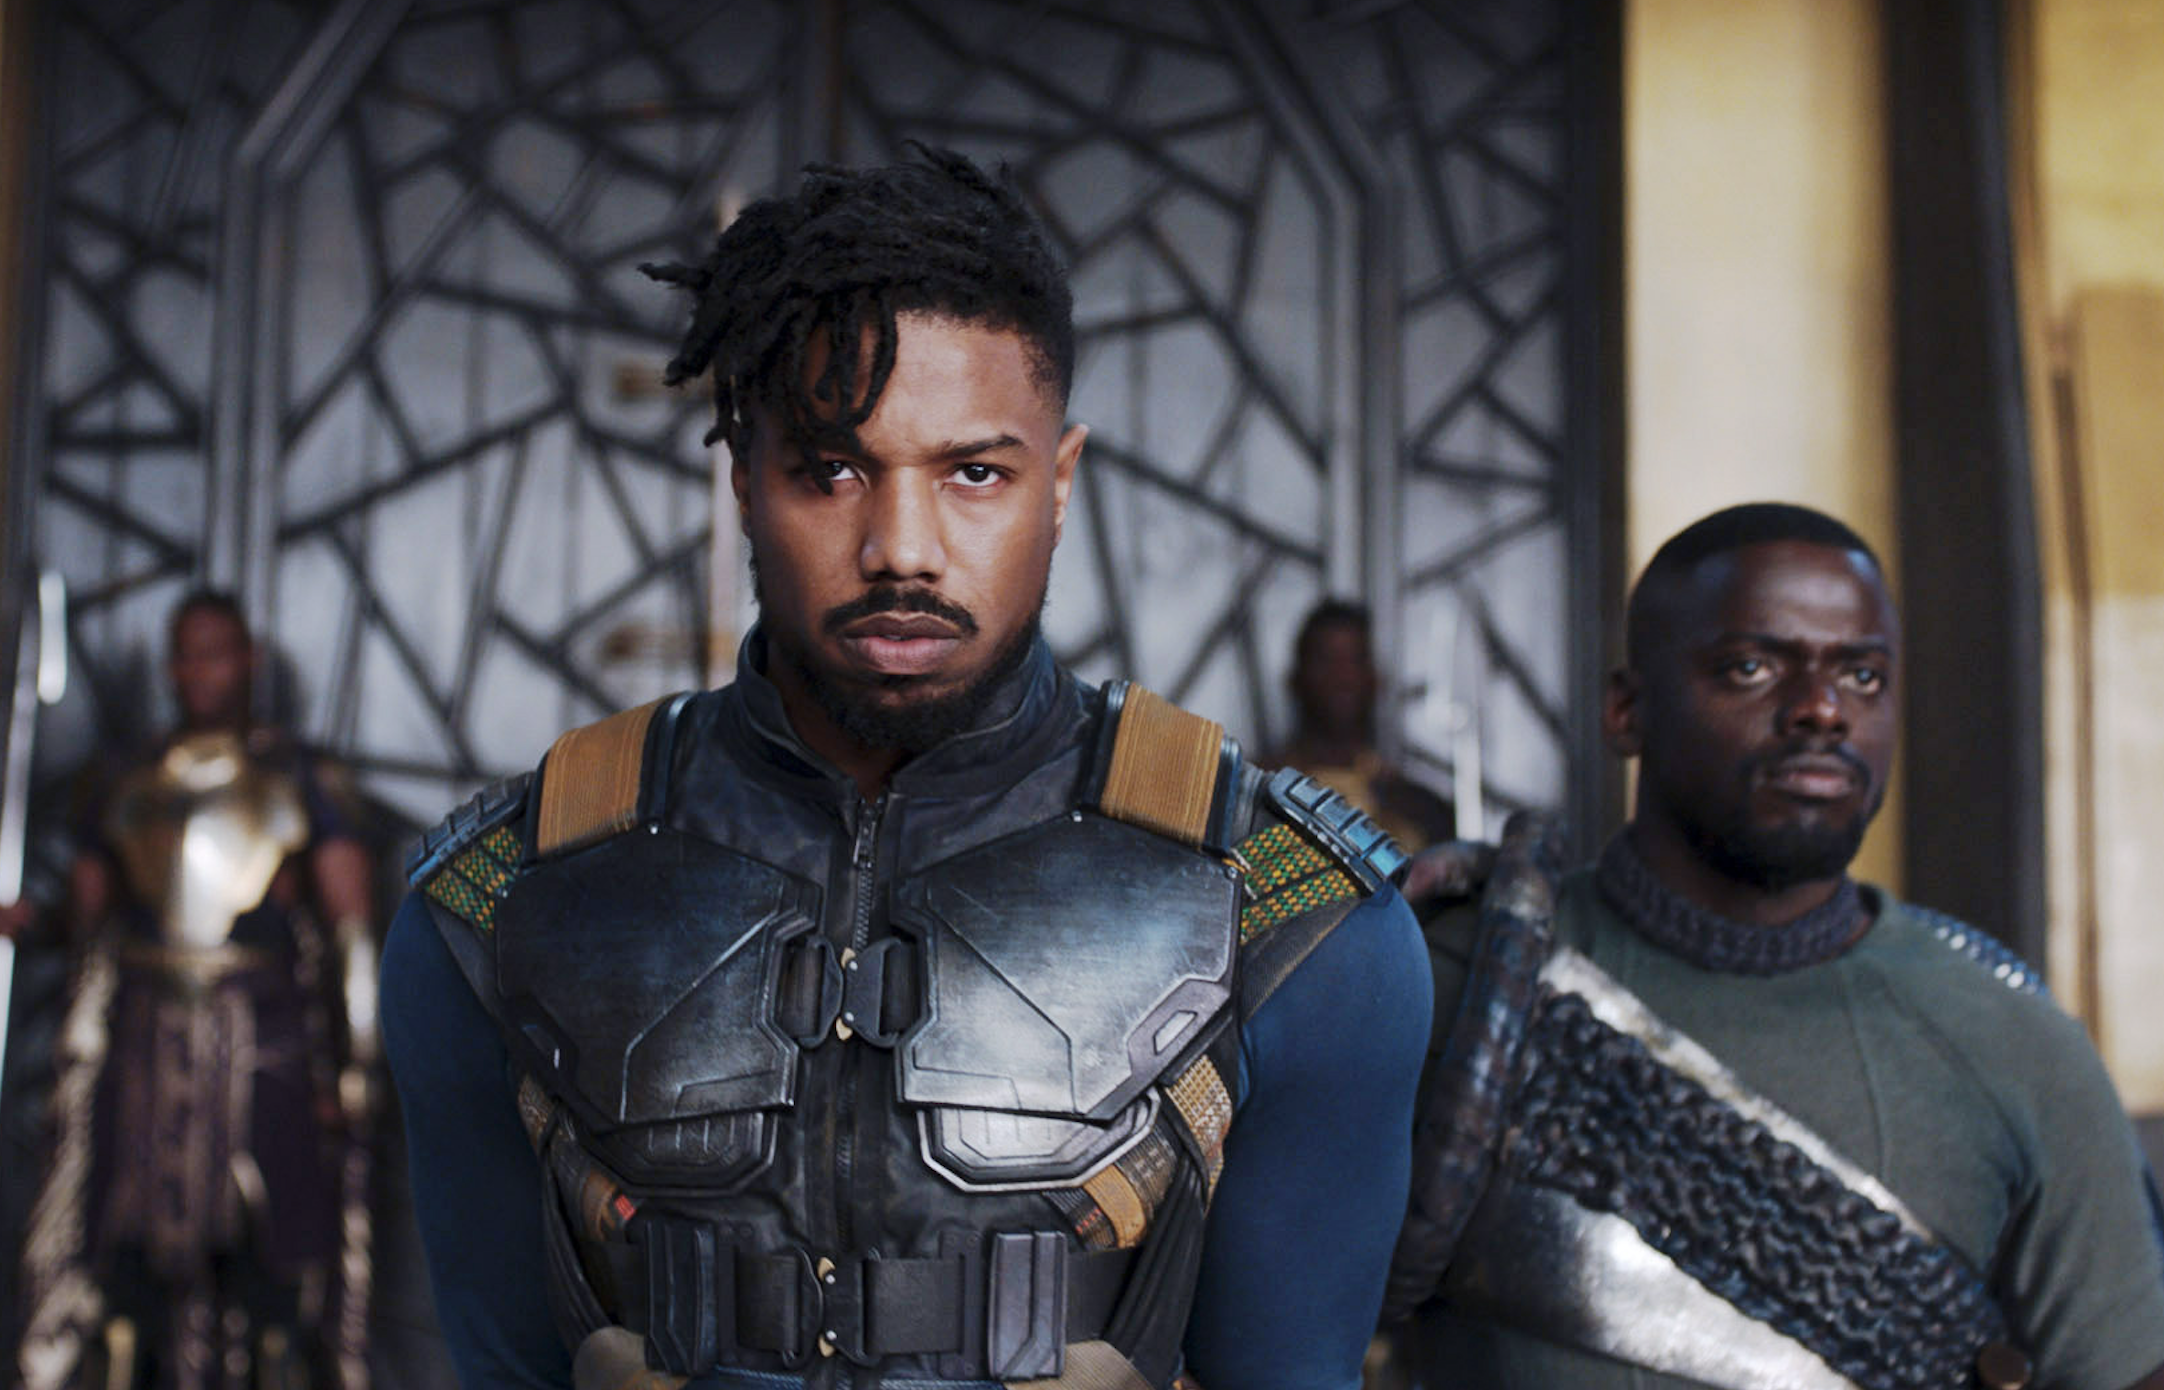 Killmonger walking into a room with guards